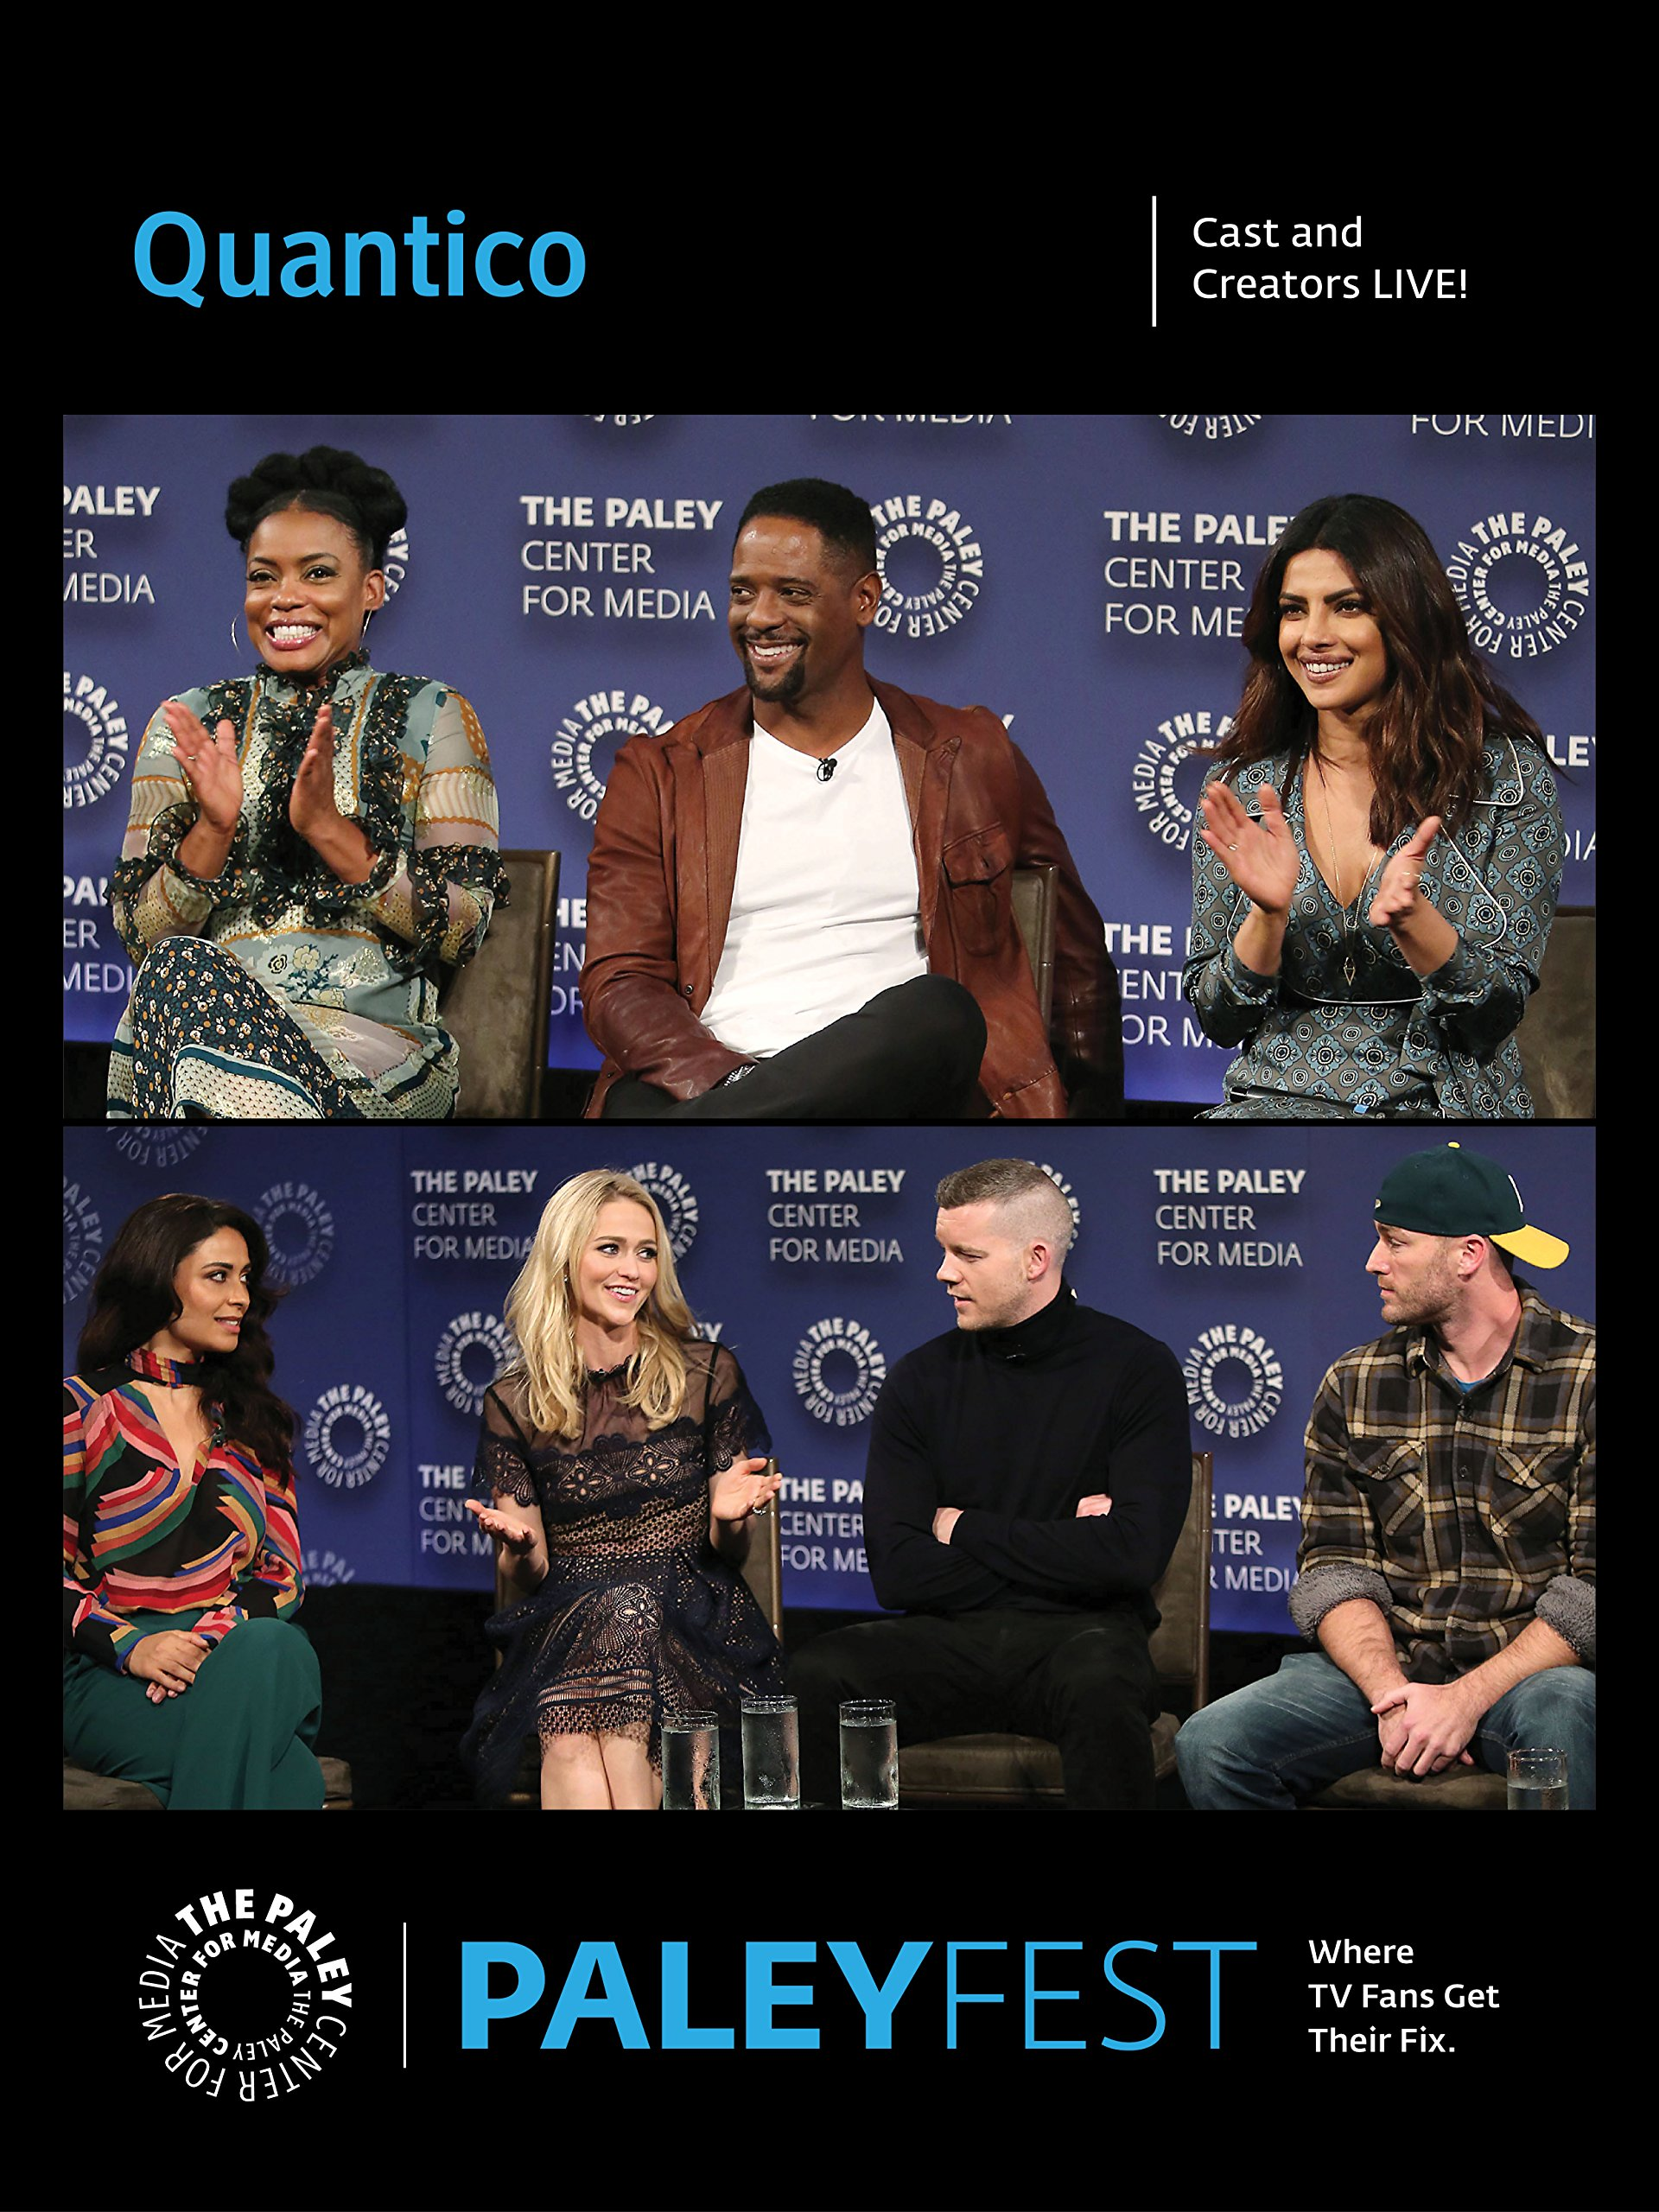 Quantico: Cast and Creators PaleyFest